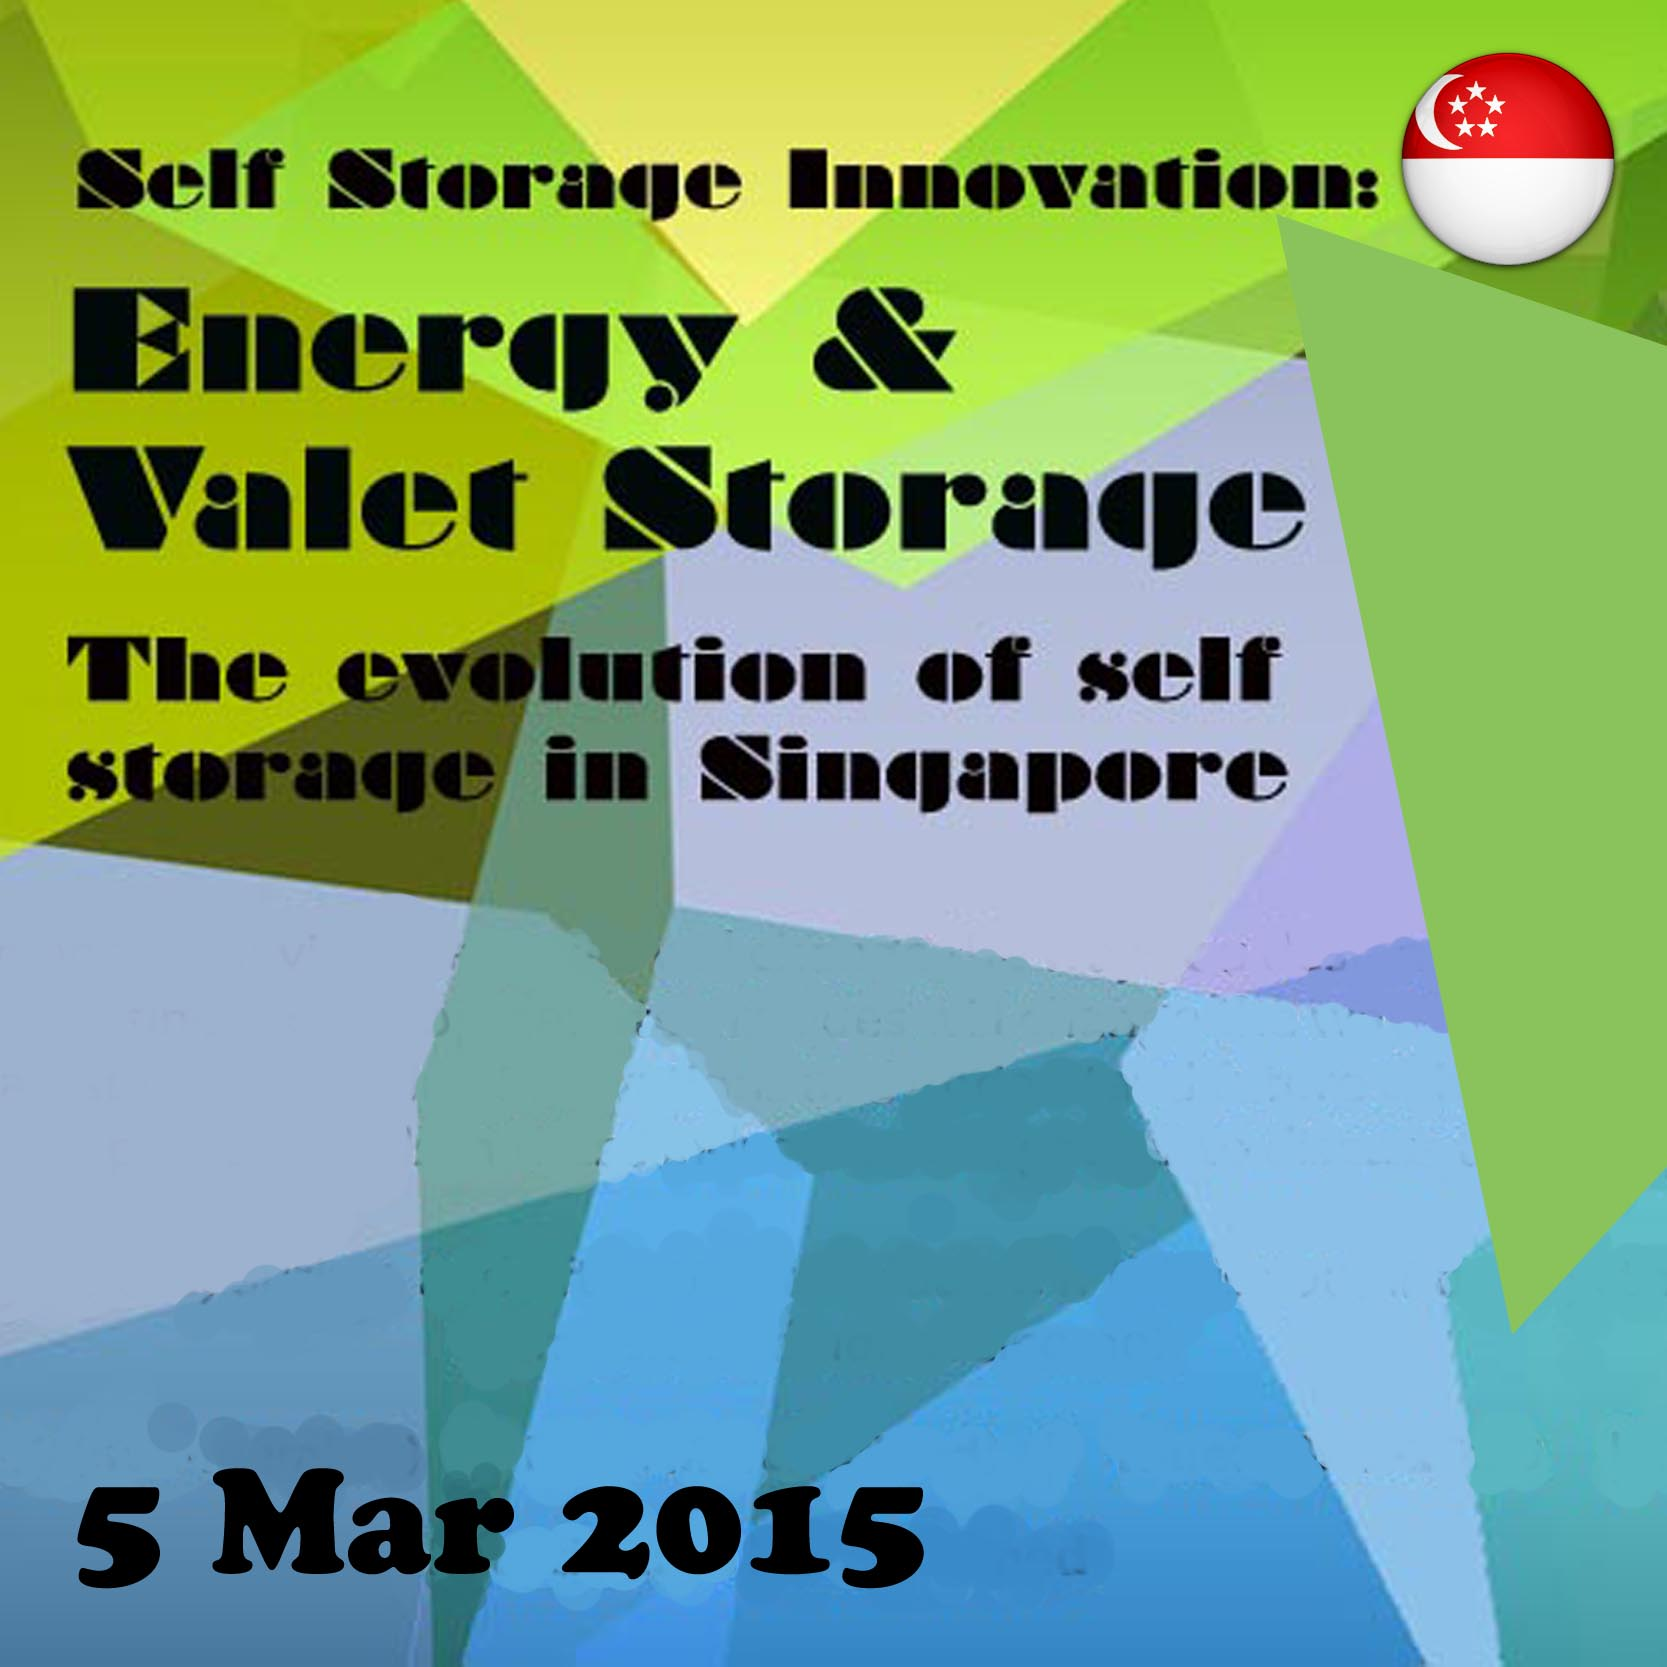 Mar 5 - Self Storage Innovation: Energy and Valet Storage The Evolution of Self Storage in Singapore